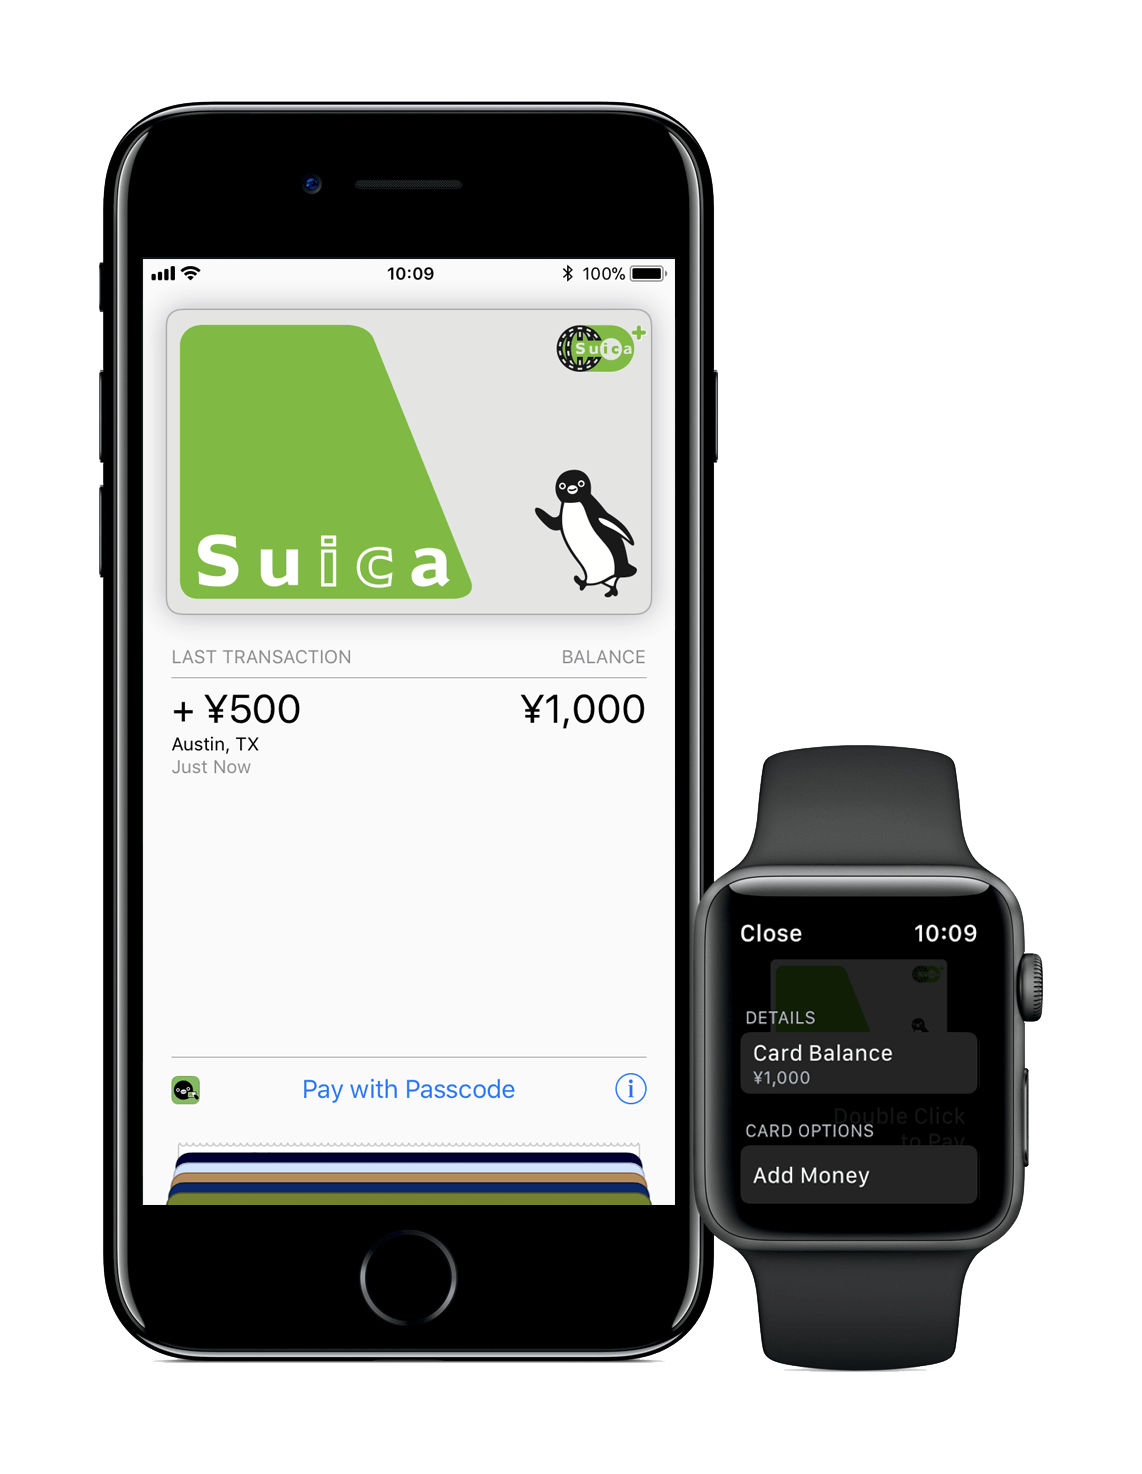 Iphone7 Plus Jp Watch2 Wallet Suica Balance